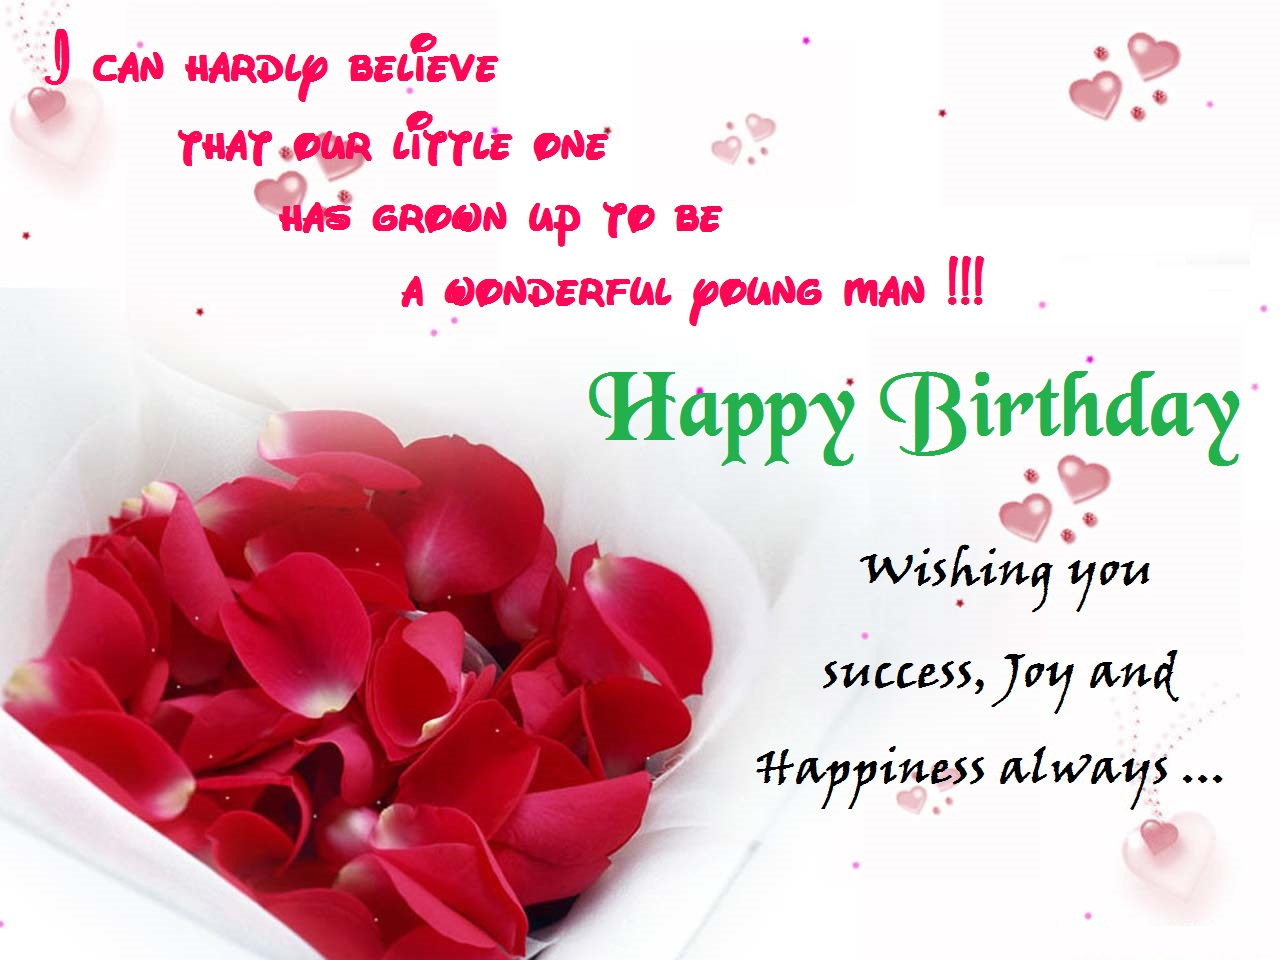 wish you happy birthday greeting card ; wishing-happy-birthday-to-son-from-father-mother-parents-greetings-card